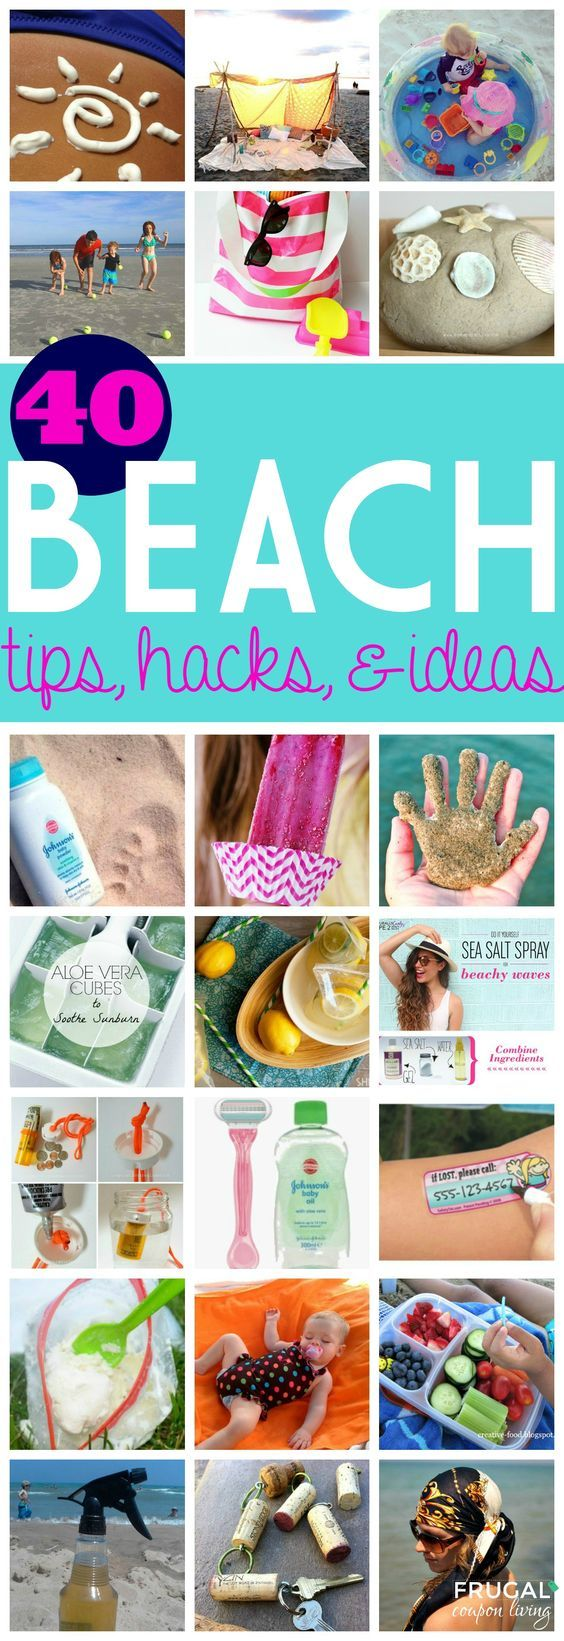 40 Beach Tips and Tricks - Hacks and Ideas for Your Trip to the Sand. Round-Up on Frugal Coupon Living